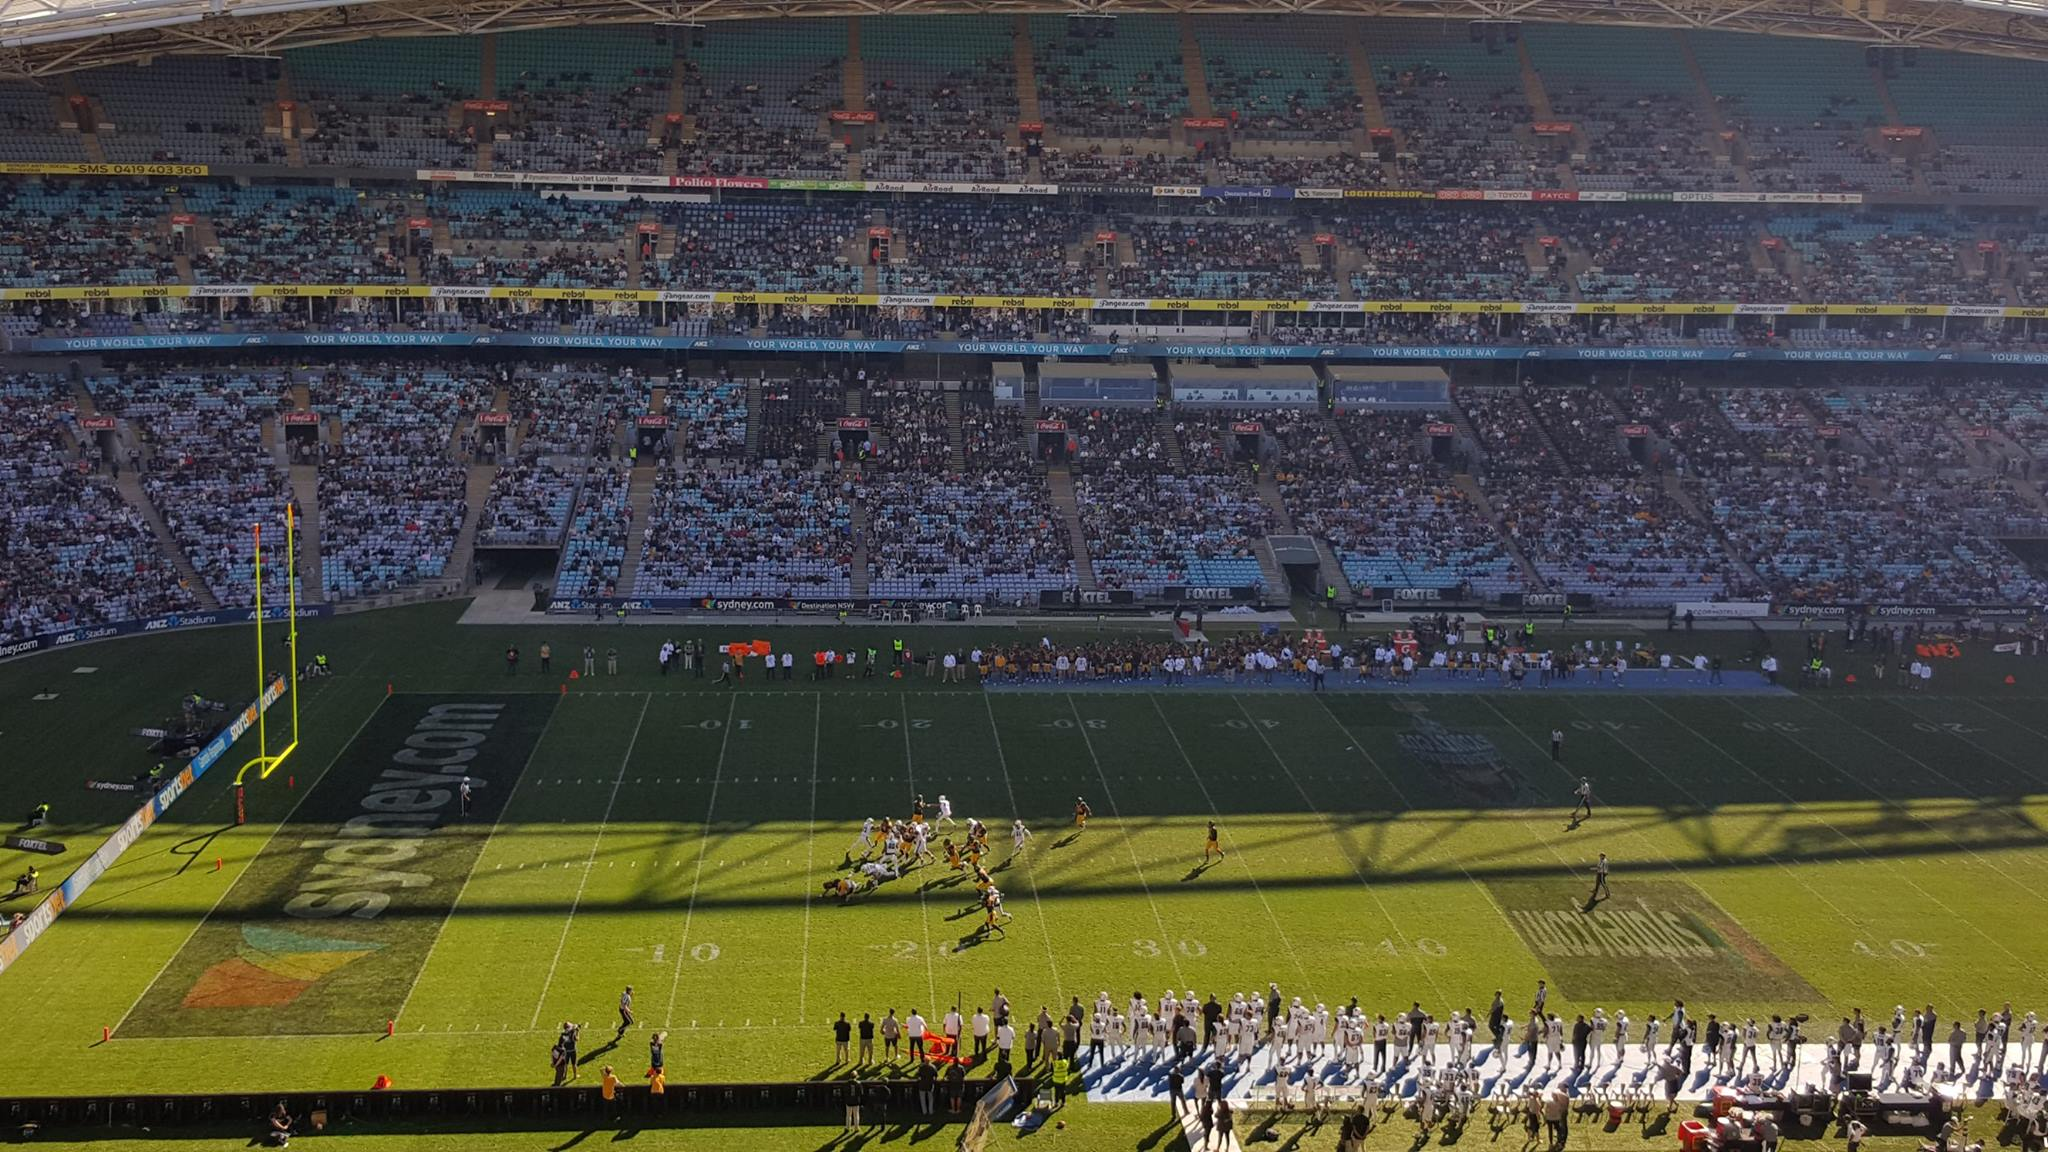 California Golden Bears vs Hawaii Rainbow Warriors in Sydney, Australia